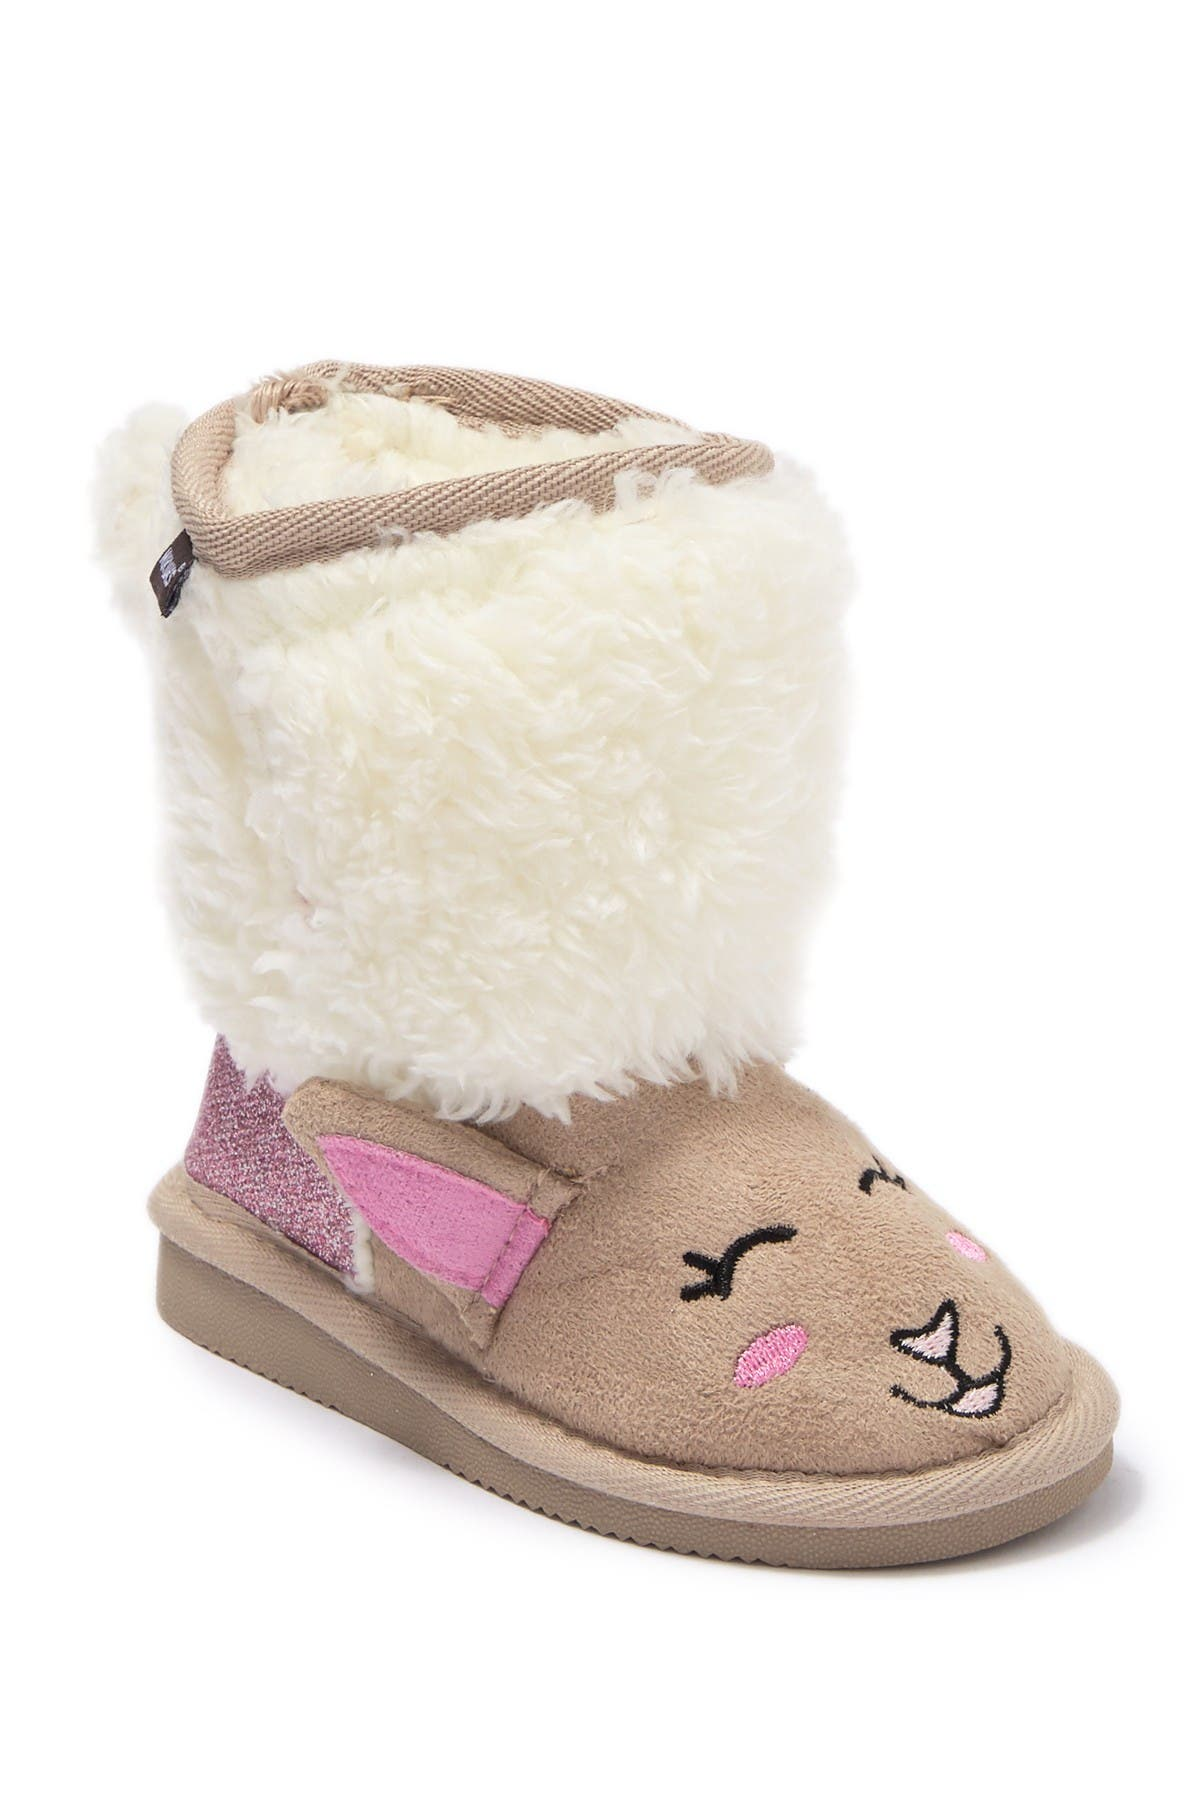 Image of MUK LUKS Novelty Faux Fur Boot